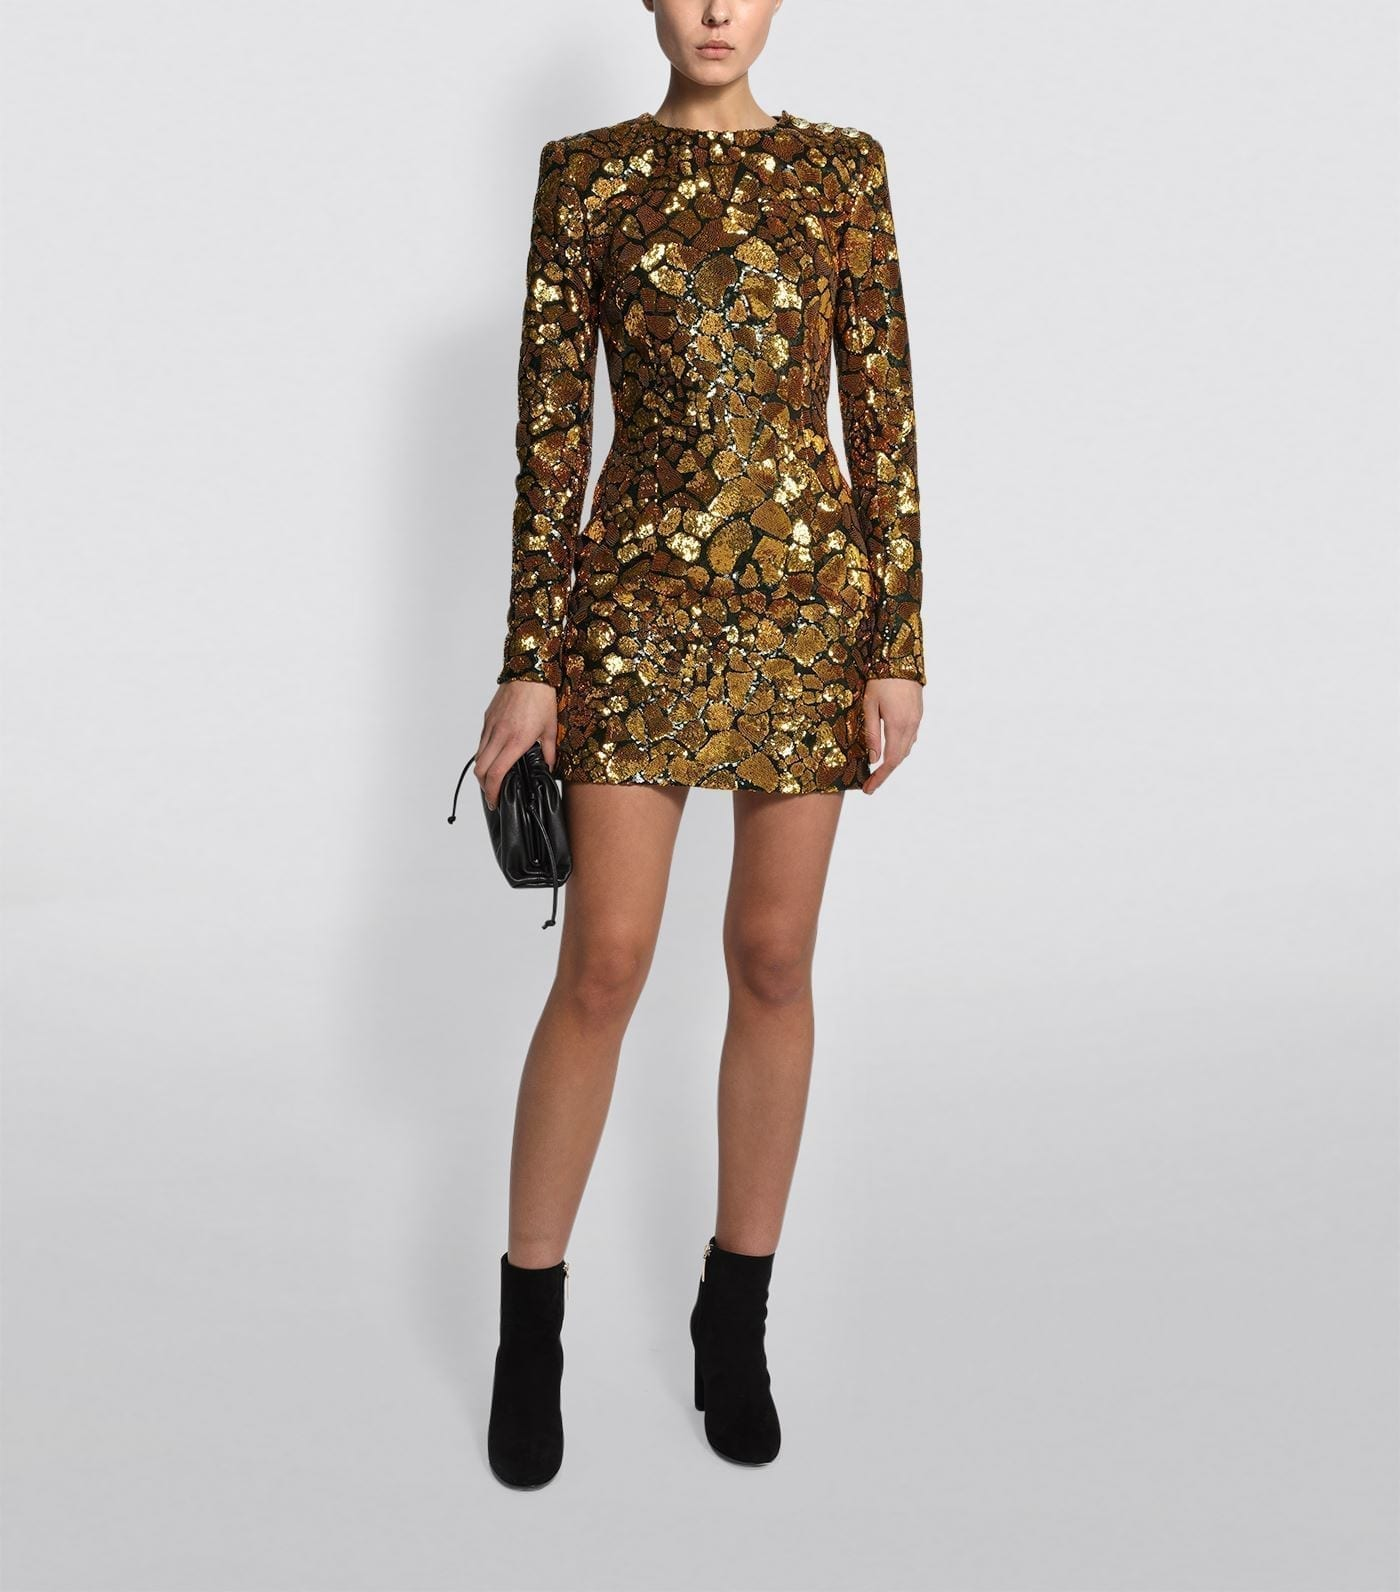 BALMAIN Sequin Giraffe Print Dress